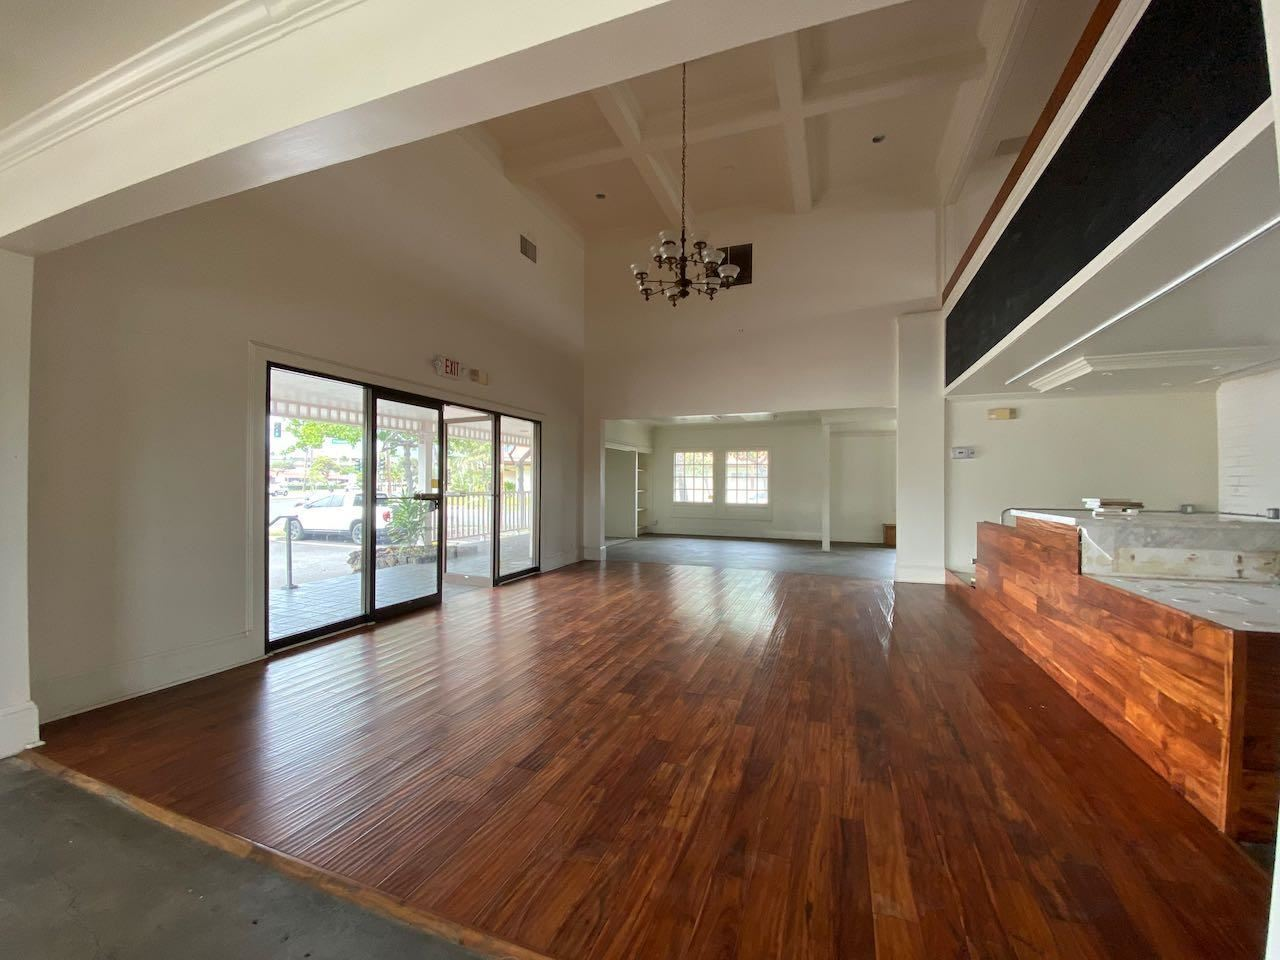 Photo of 7 E Kaahumanu Ave, Kahului, HI 96732 (MLS # 385704)